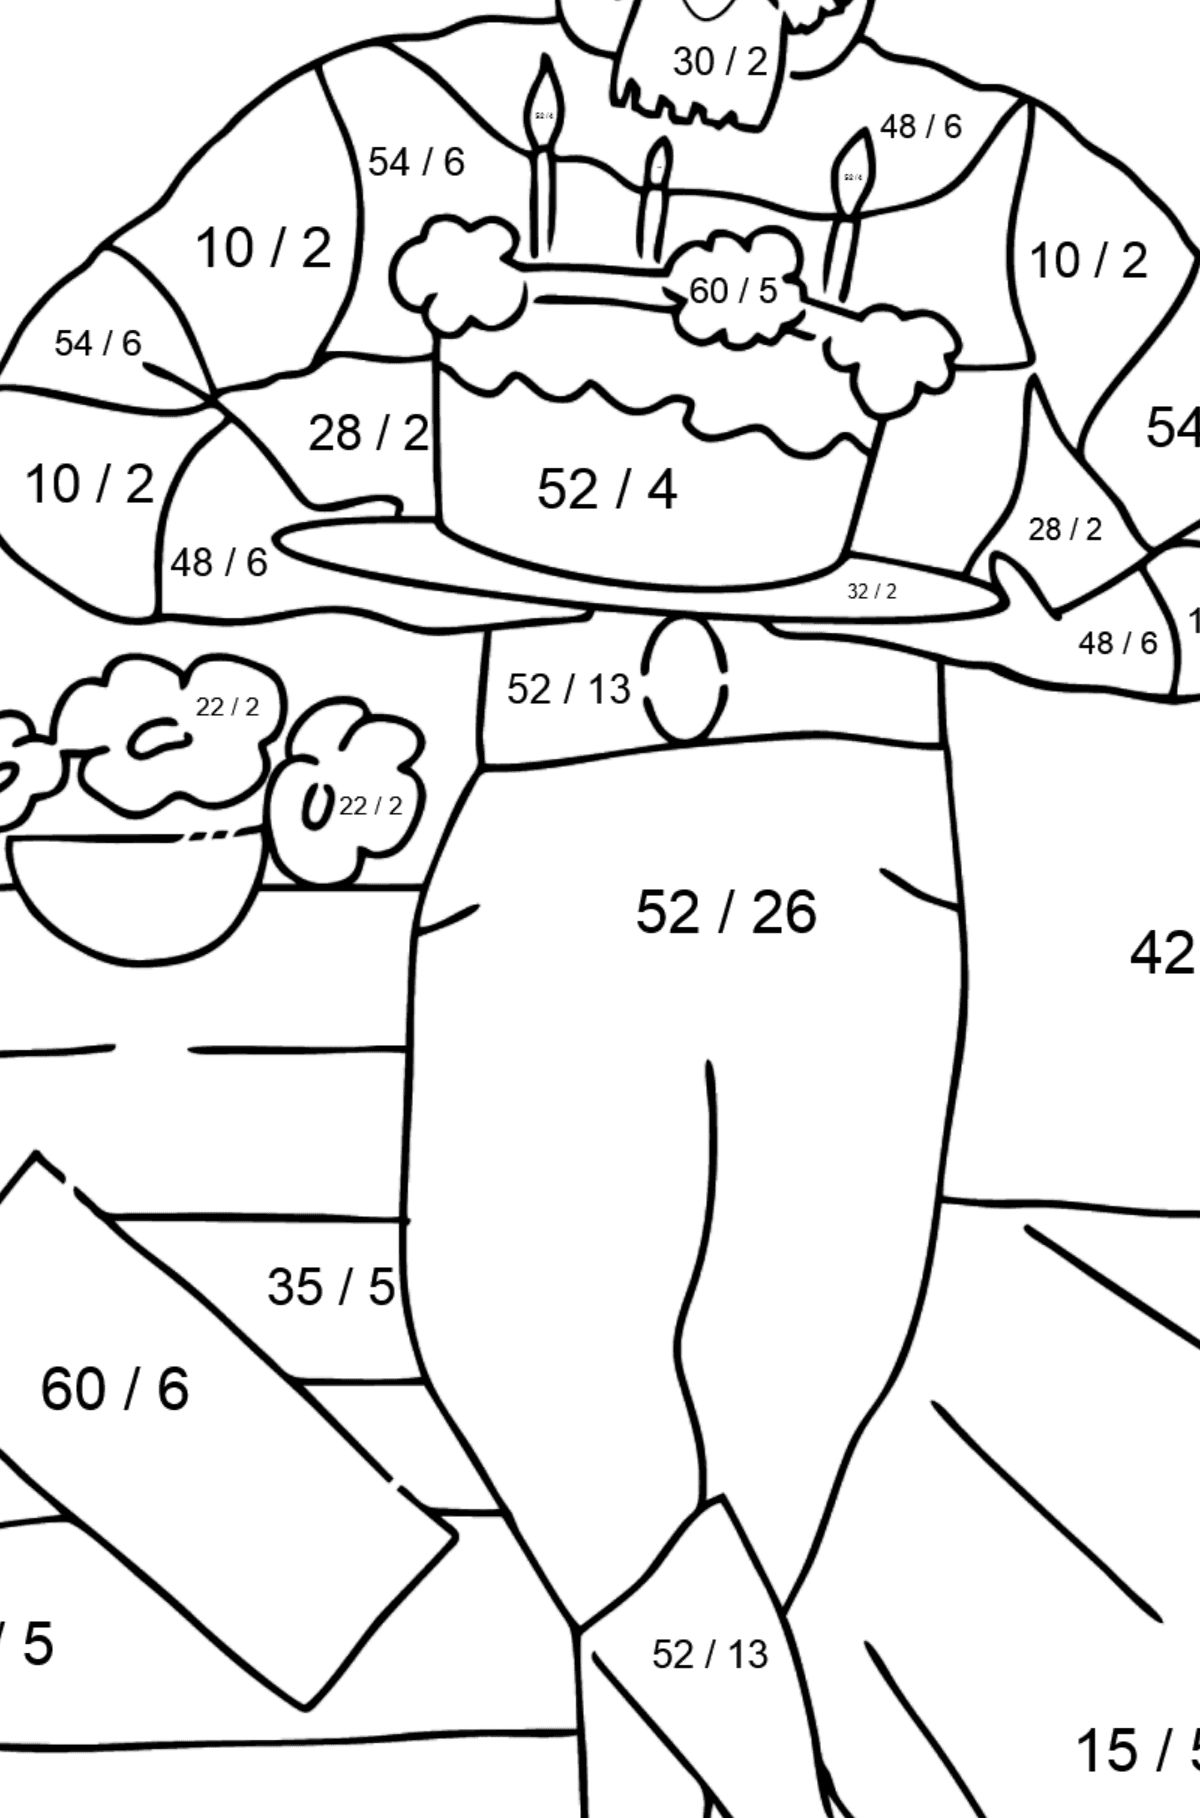 Coloring Page - A Pirate is Waiting for Guests - Math Coloring - Division for Kids